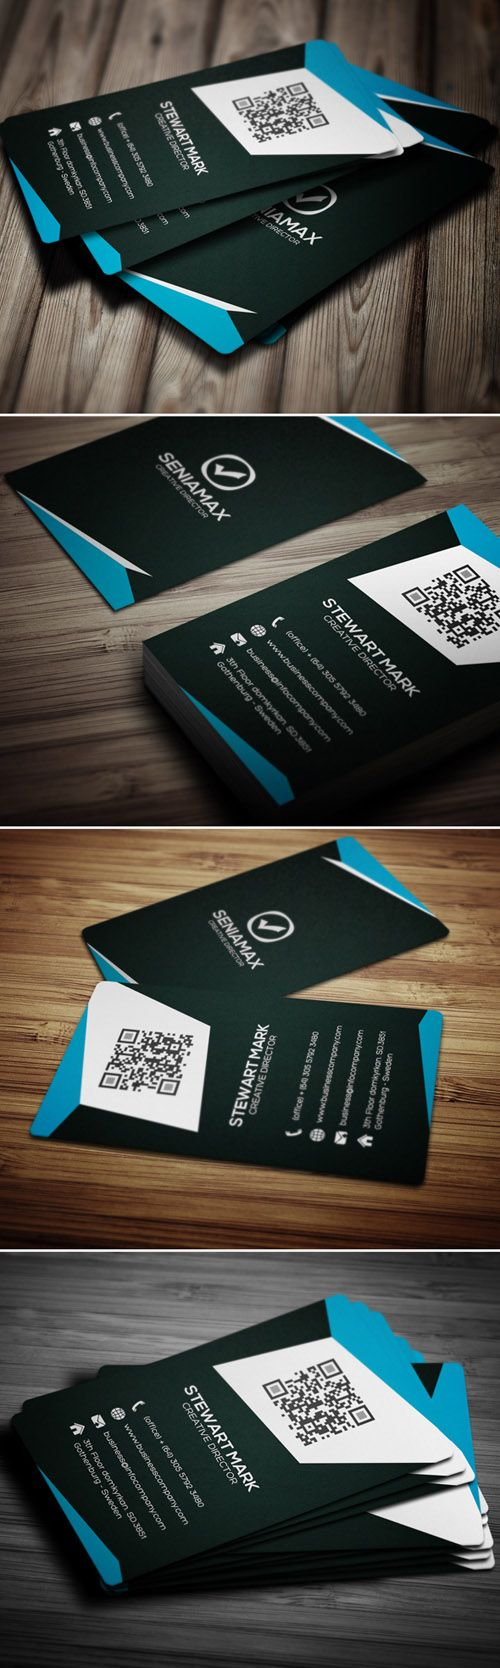 79 best Found Inspiration: Business Cards images on Pinterest ...